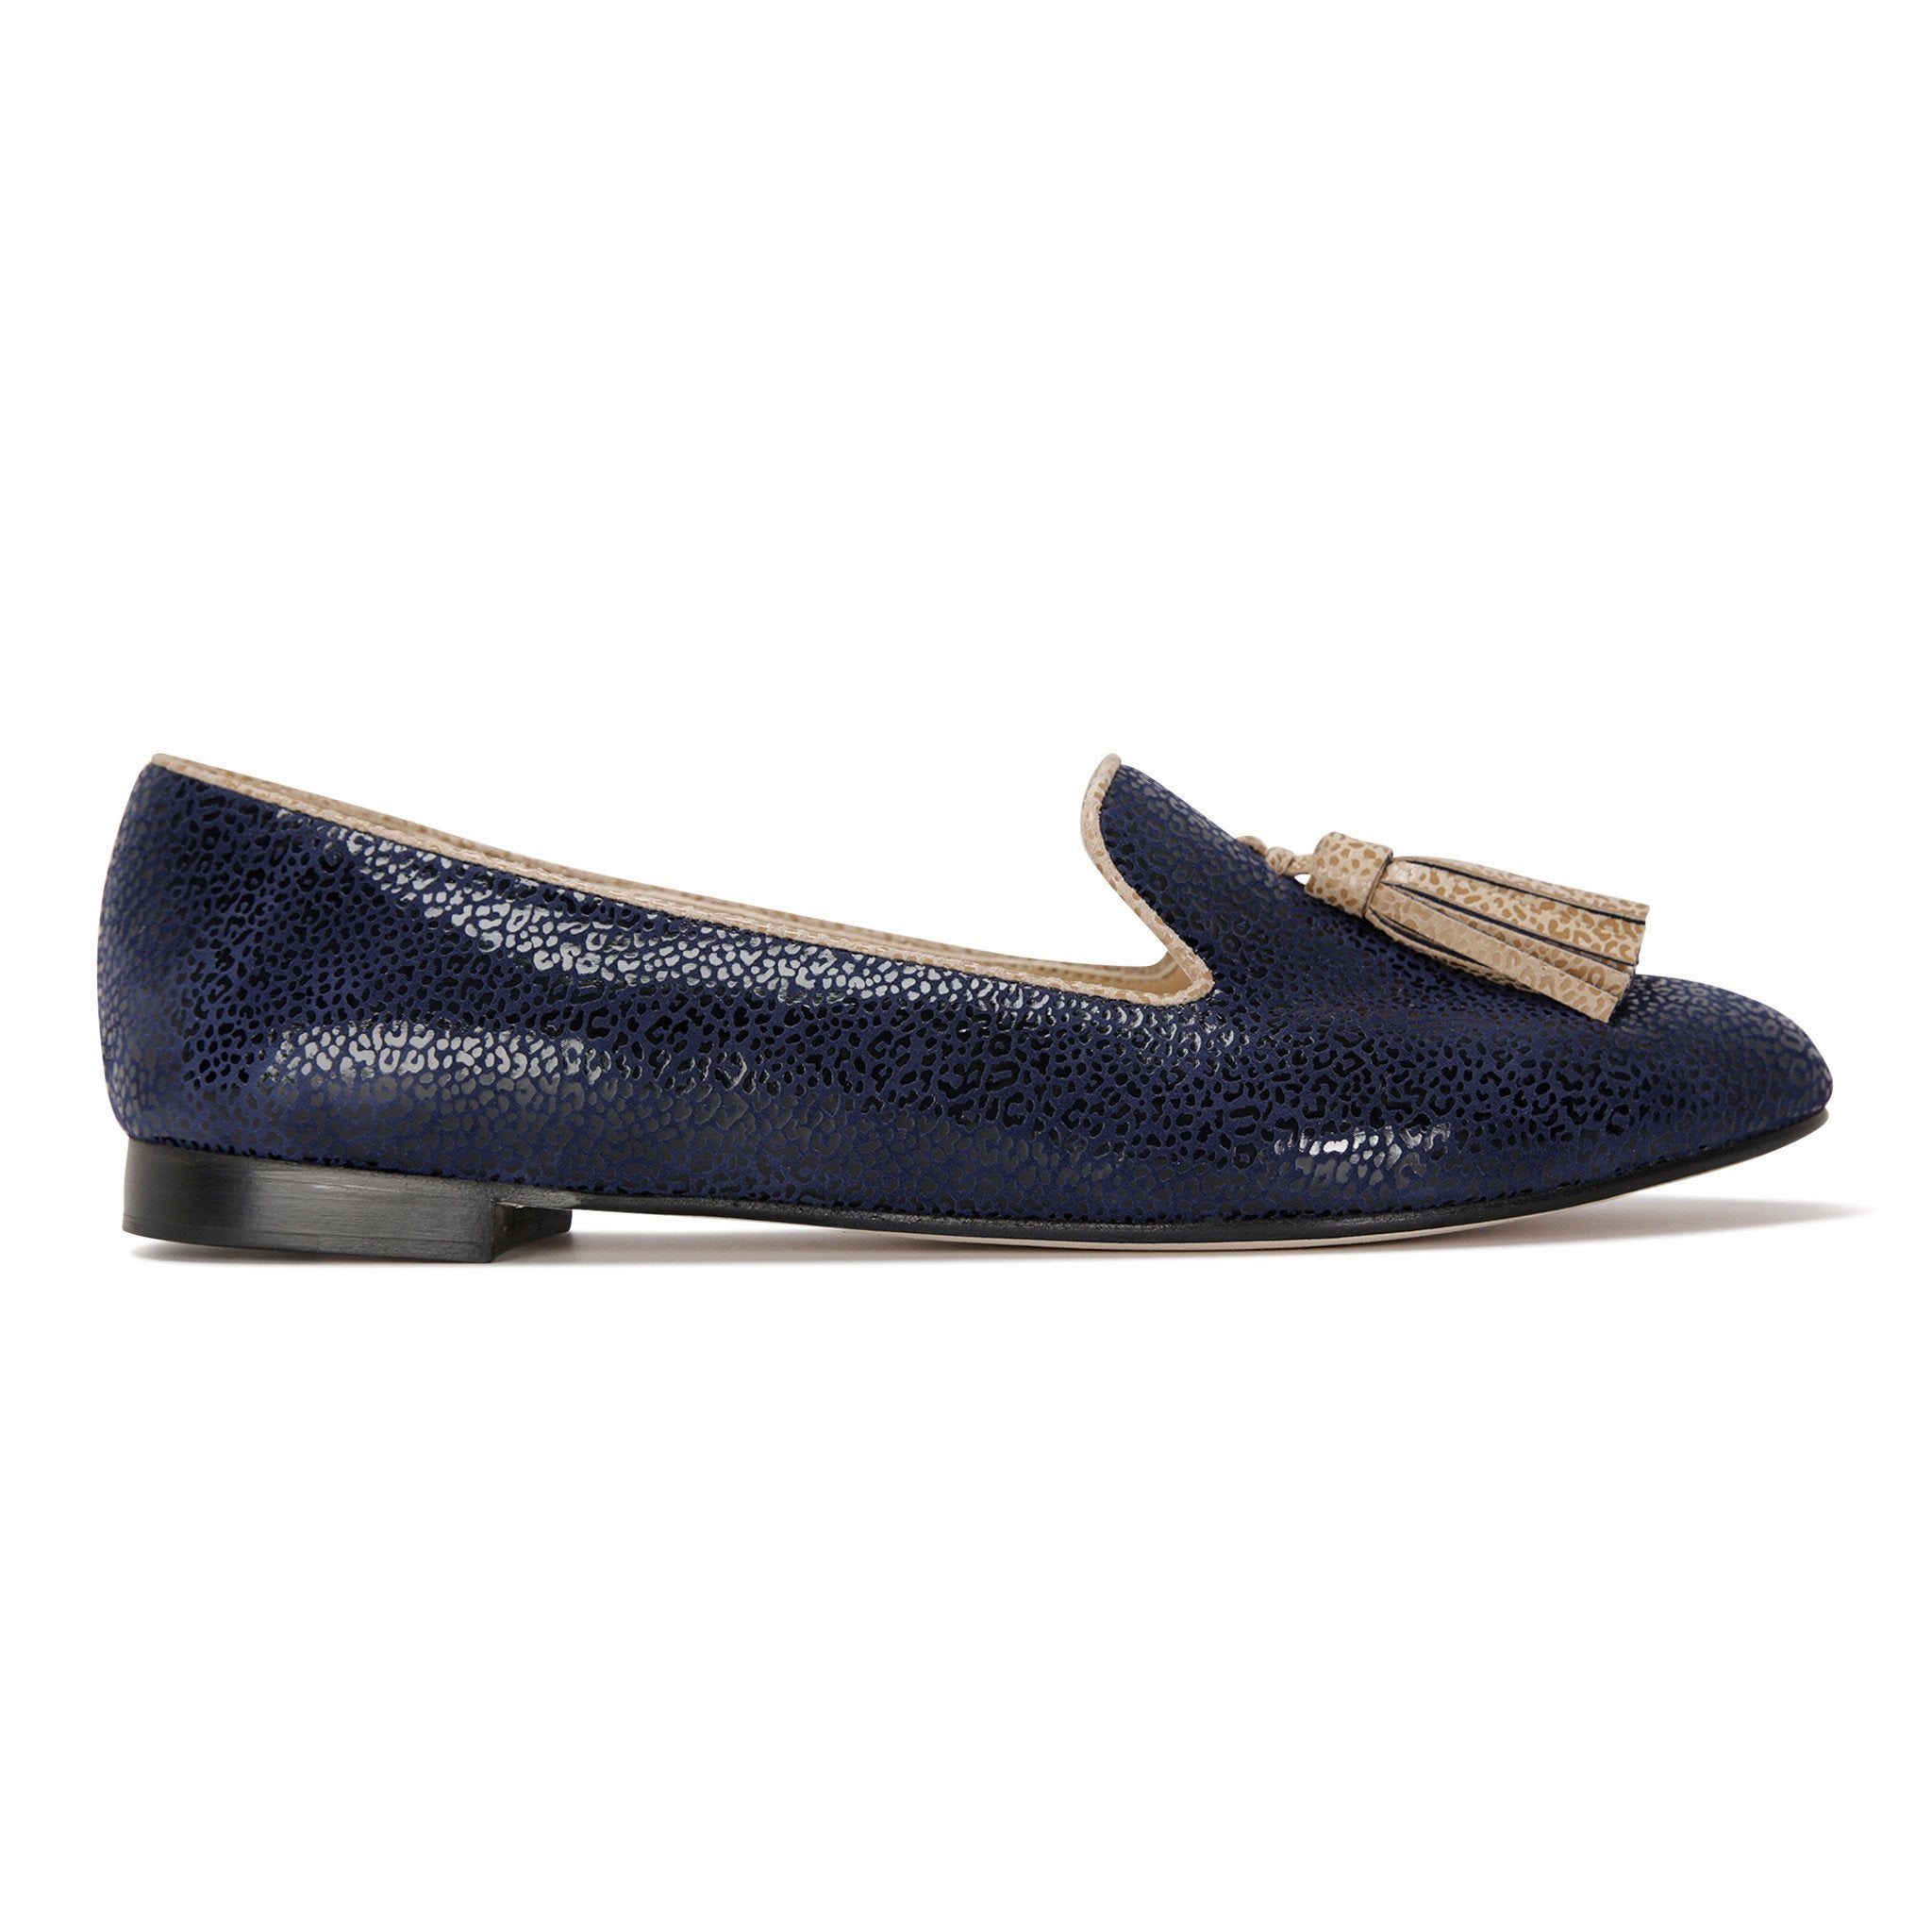 PARMA - Savannah Midnight + Tan, VIAJIYU - Women's Hand Made Sustainable Luxury Shoes. Made in Italy. Made to Order.